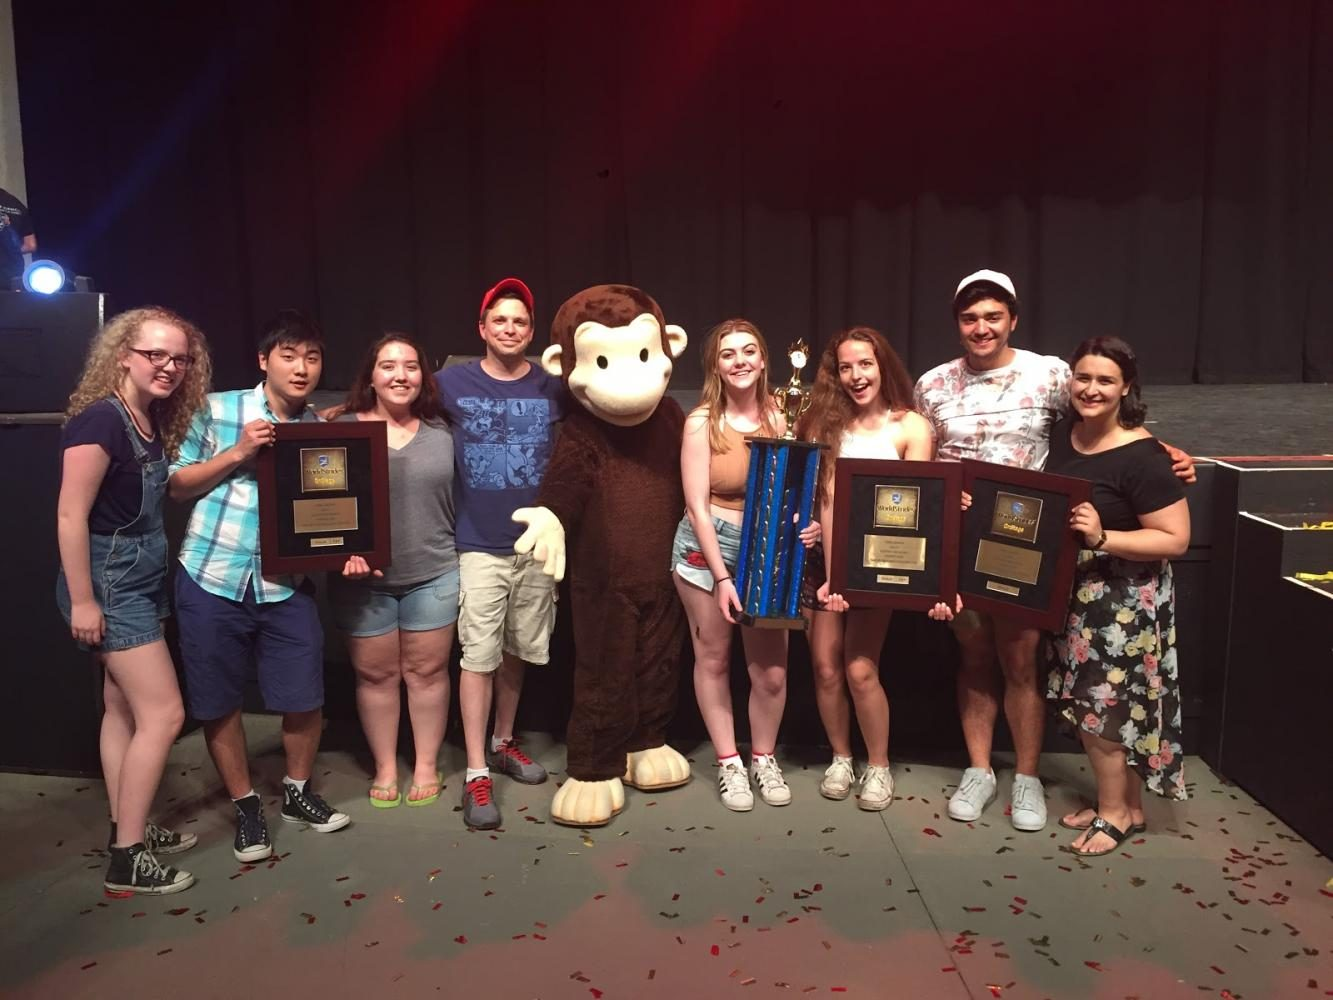 Representatives from the Chamber, Women's, and Concert Choirs pose as they accept their awards along with their directors, Carl Helder and Anna Lilikas. All three choirs were ranked in the gold division at the Worldstrides choral competition at Universal Studios in Orlando, Florida.